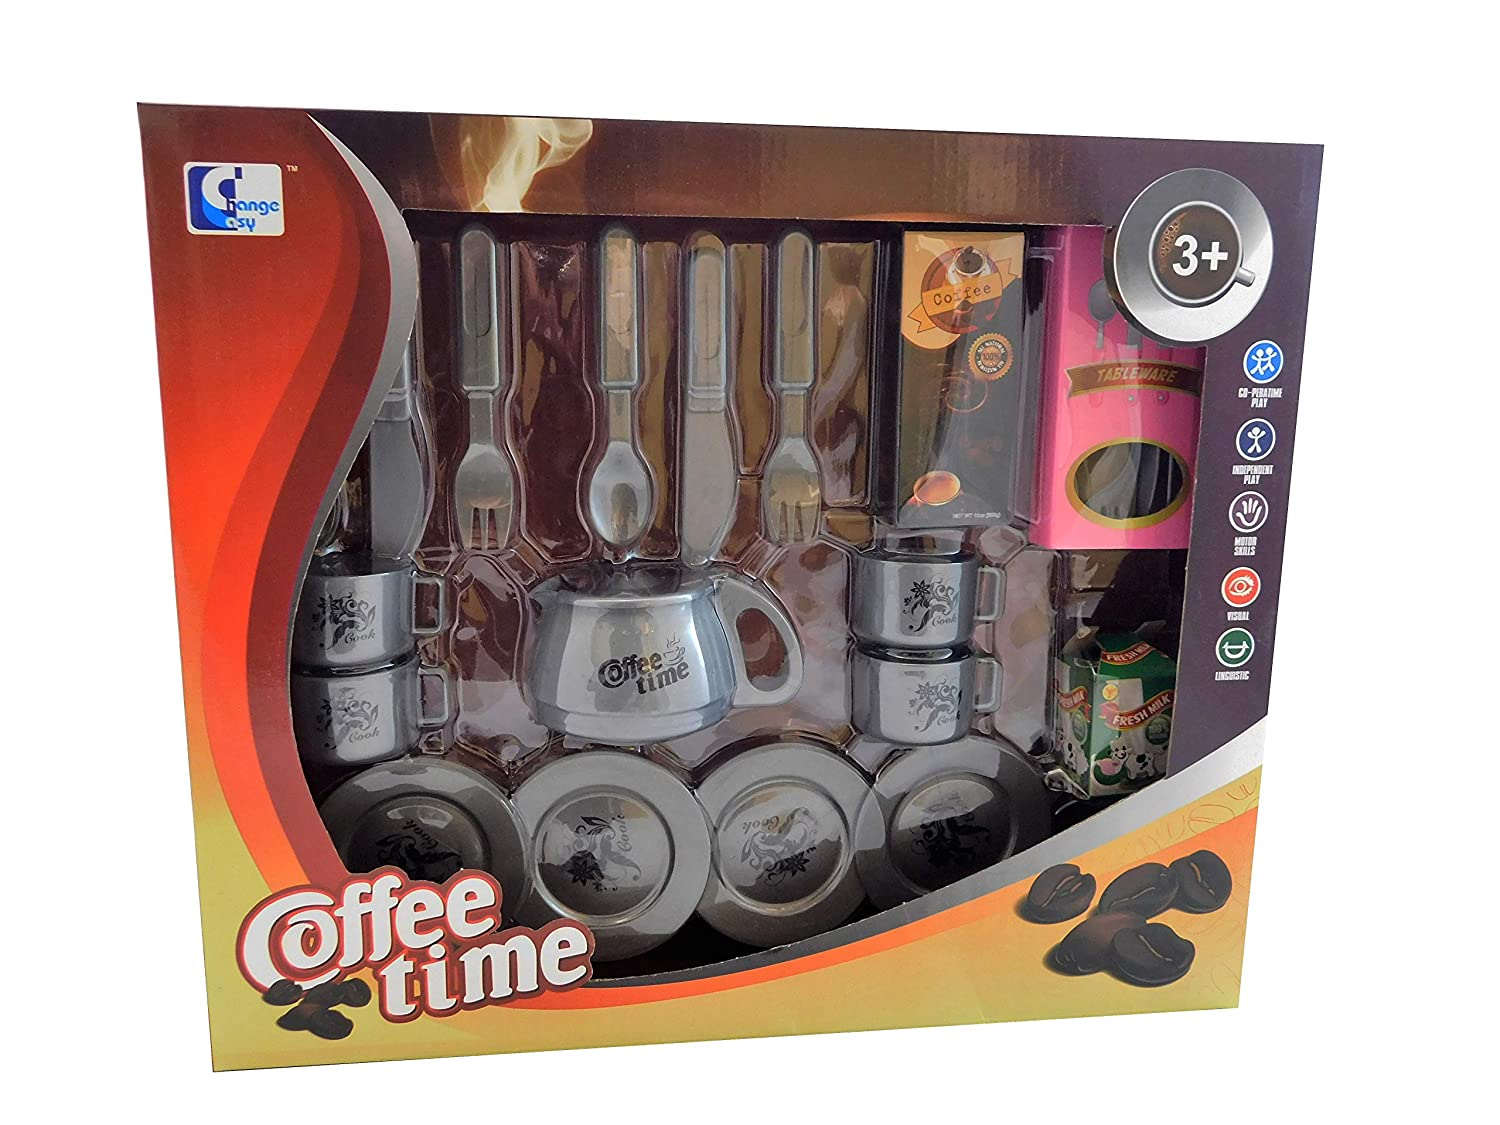 Allkindathings  Children Toy 23 pieces Coffee Time Tea Set Cups Saucers Spoons Tea Set